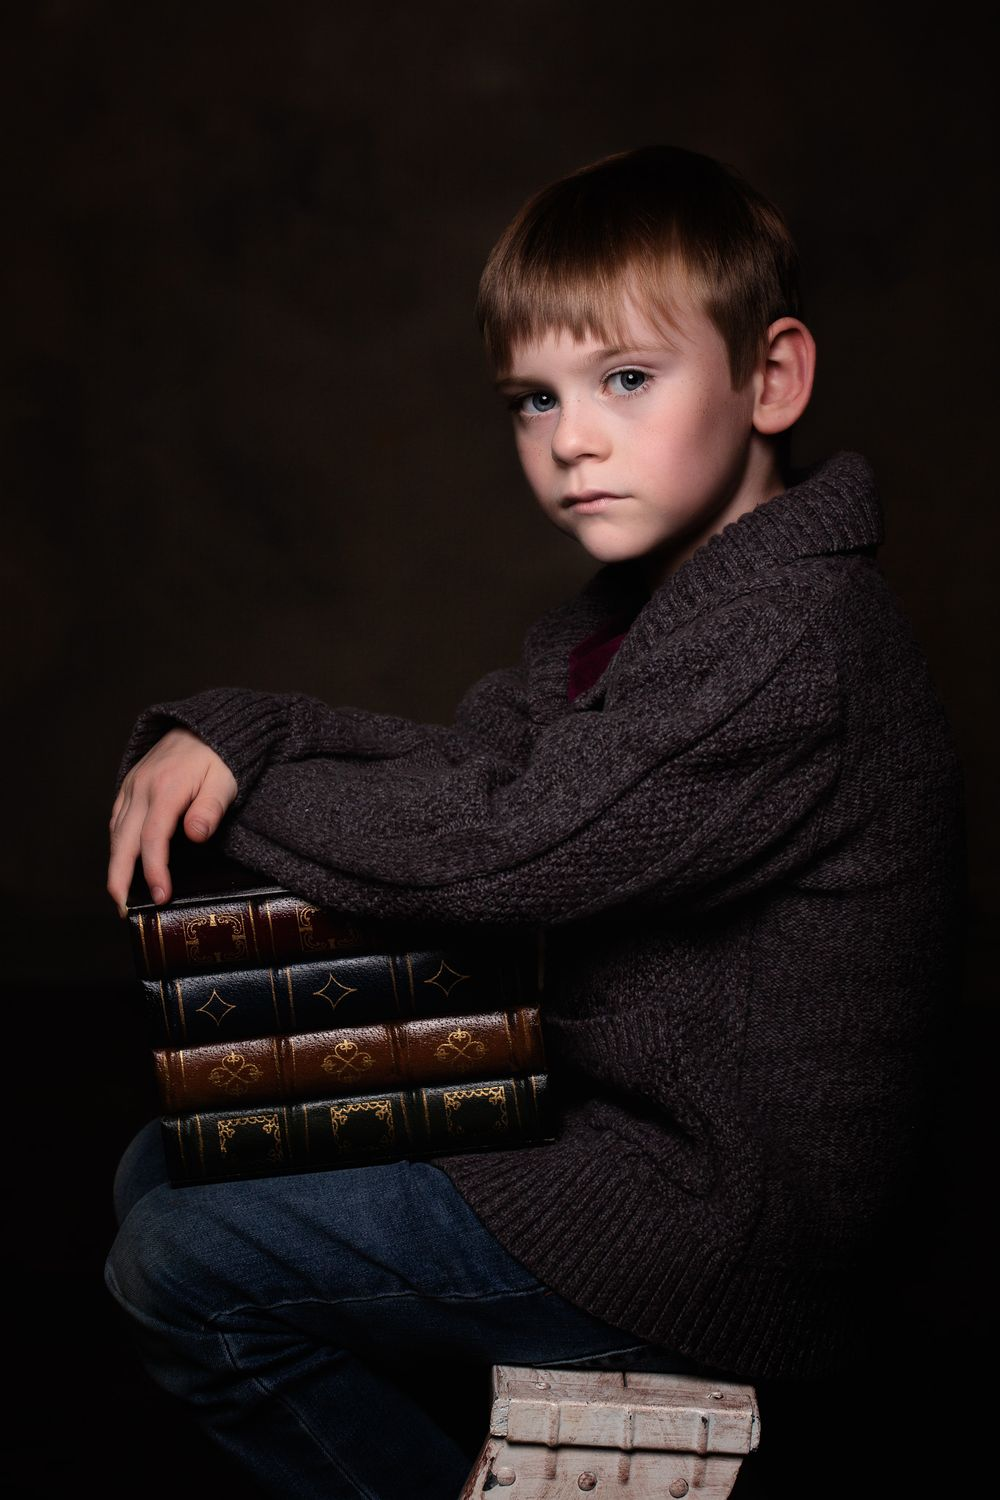 Fine Art child portrait of a young boy holding a stack of fake books.